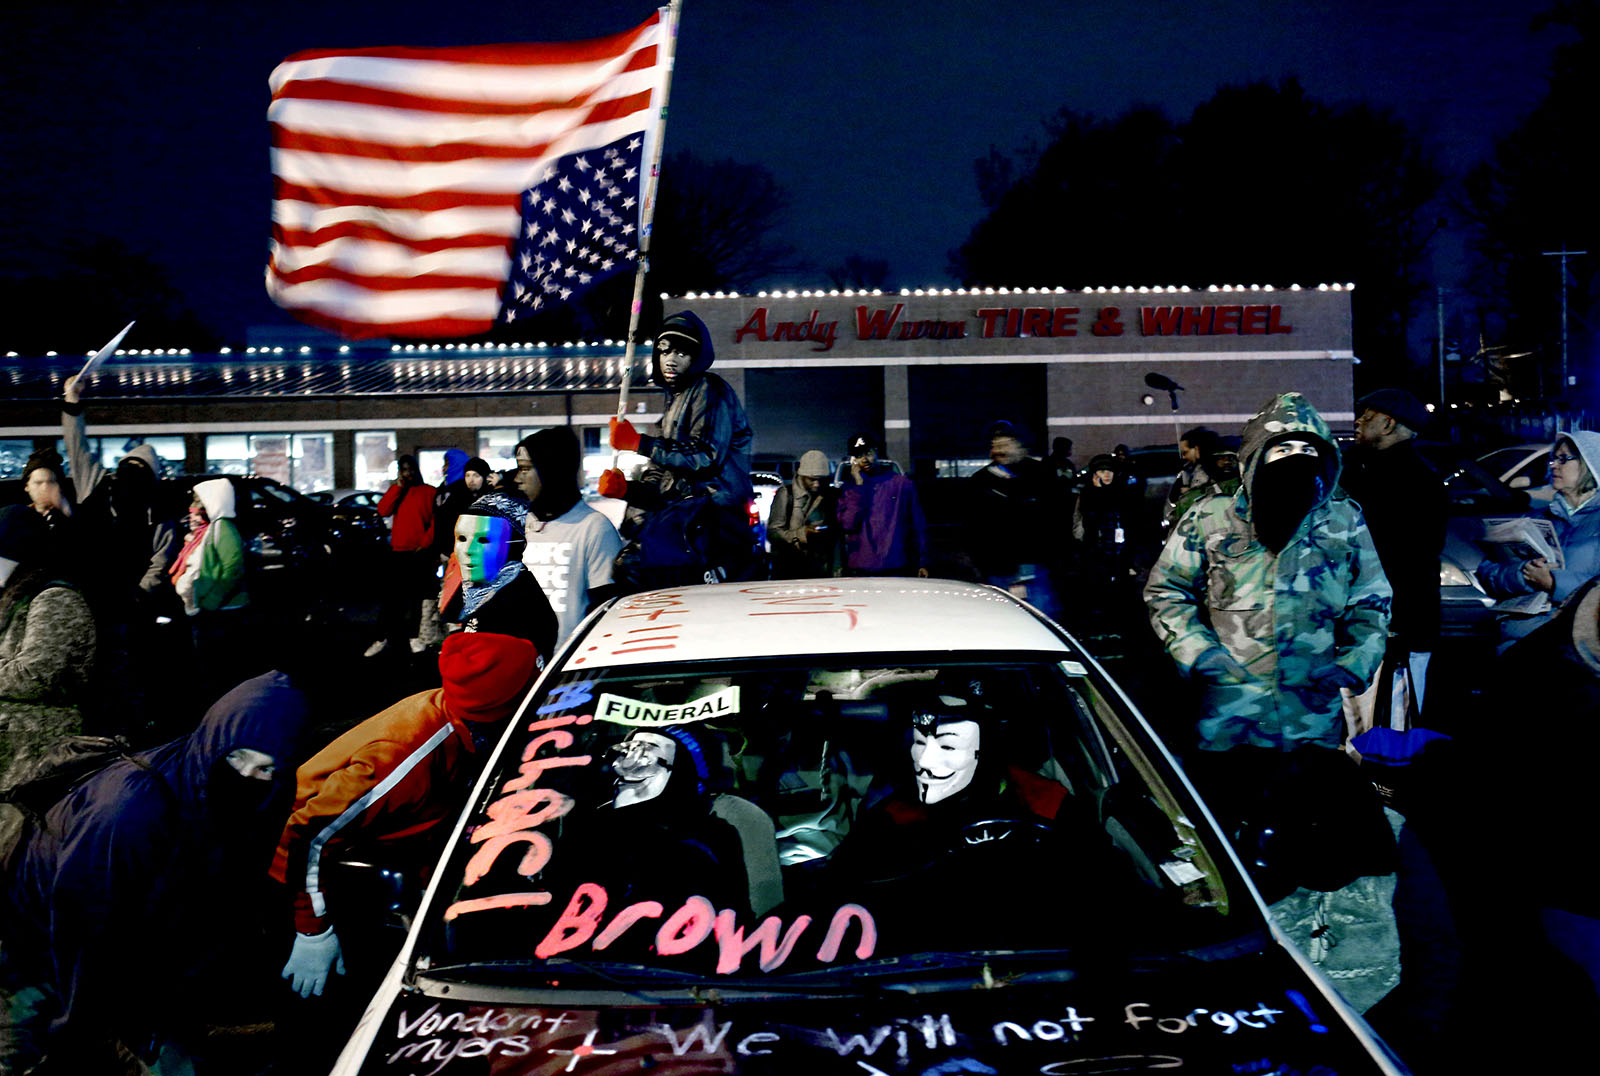 November 2014: They are waiting for the decision of the grand jury whether police officer  Darren Wilson will be prosecuted for having shot and killed Michael Brown.